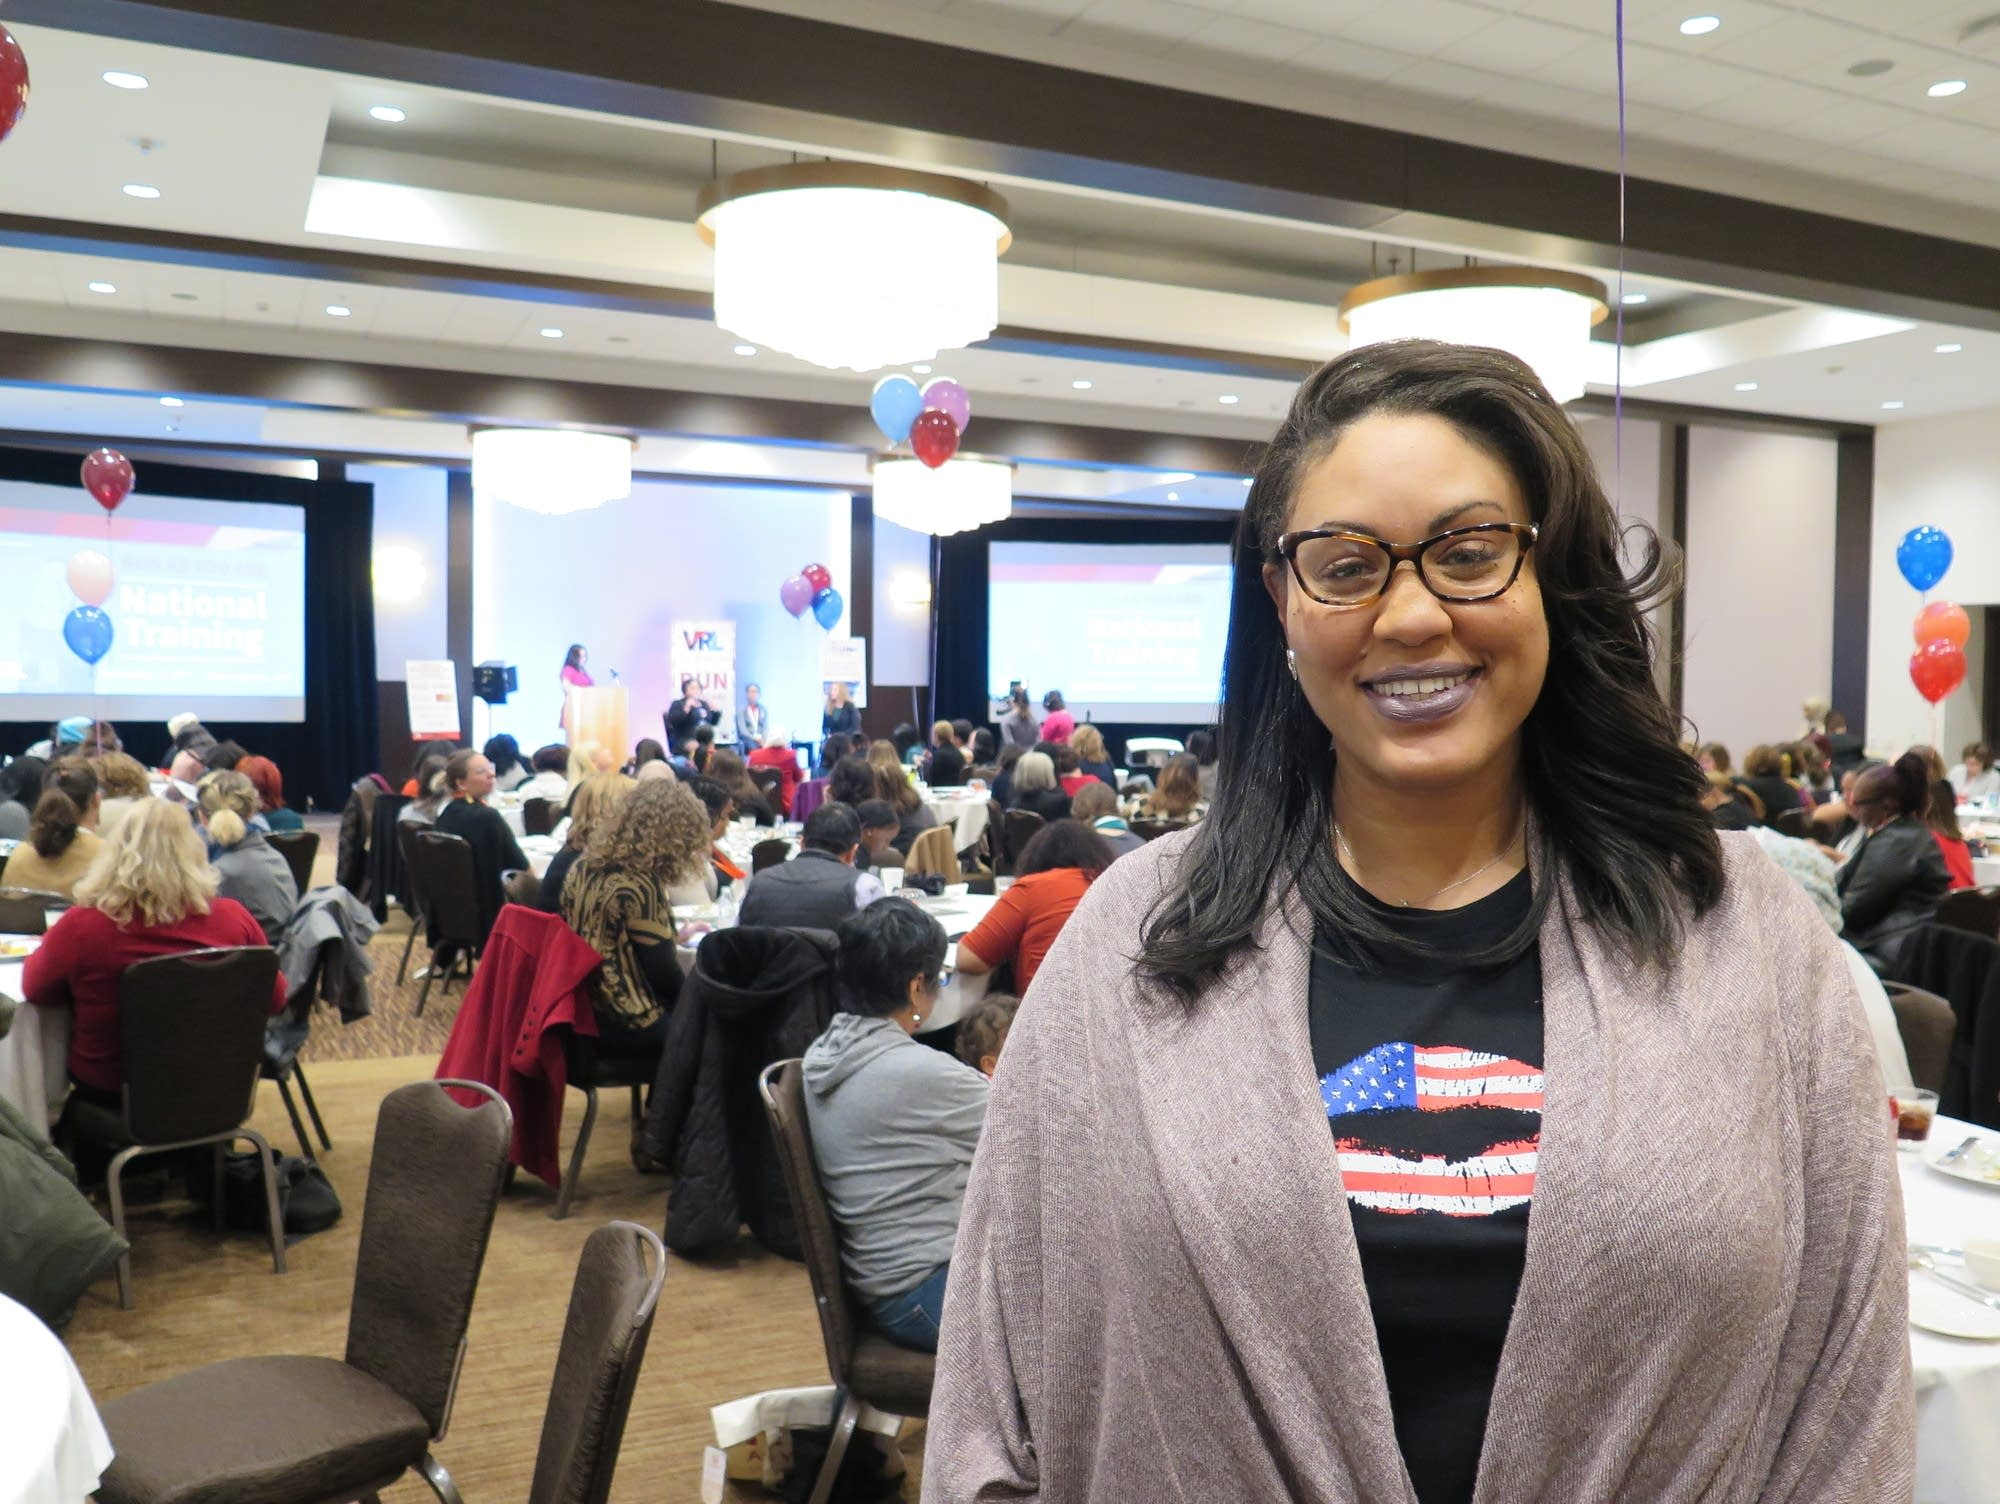 Tamara Flowers is interested in running for office in St. Paul.